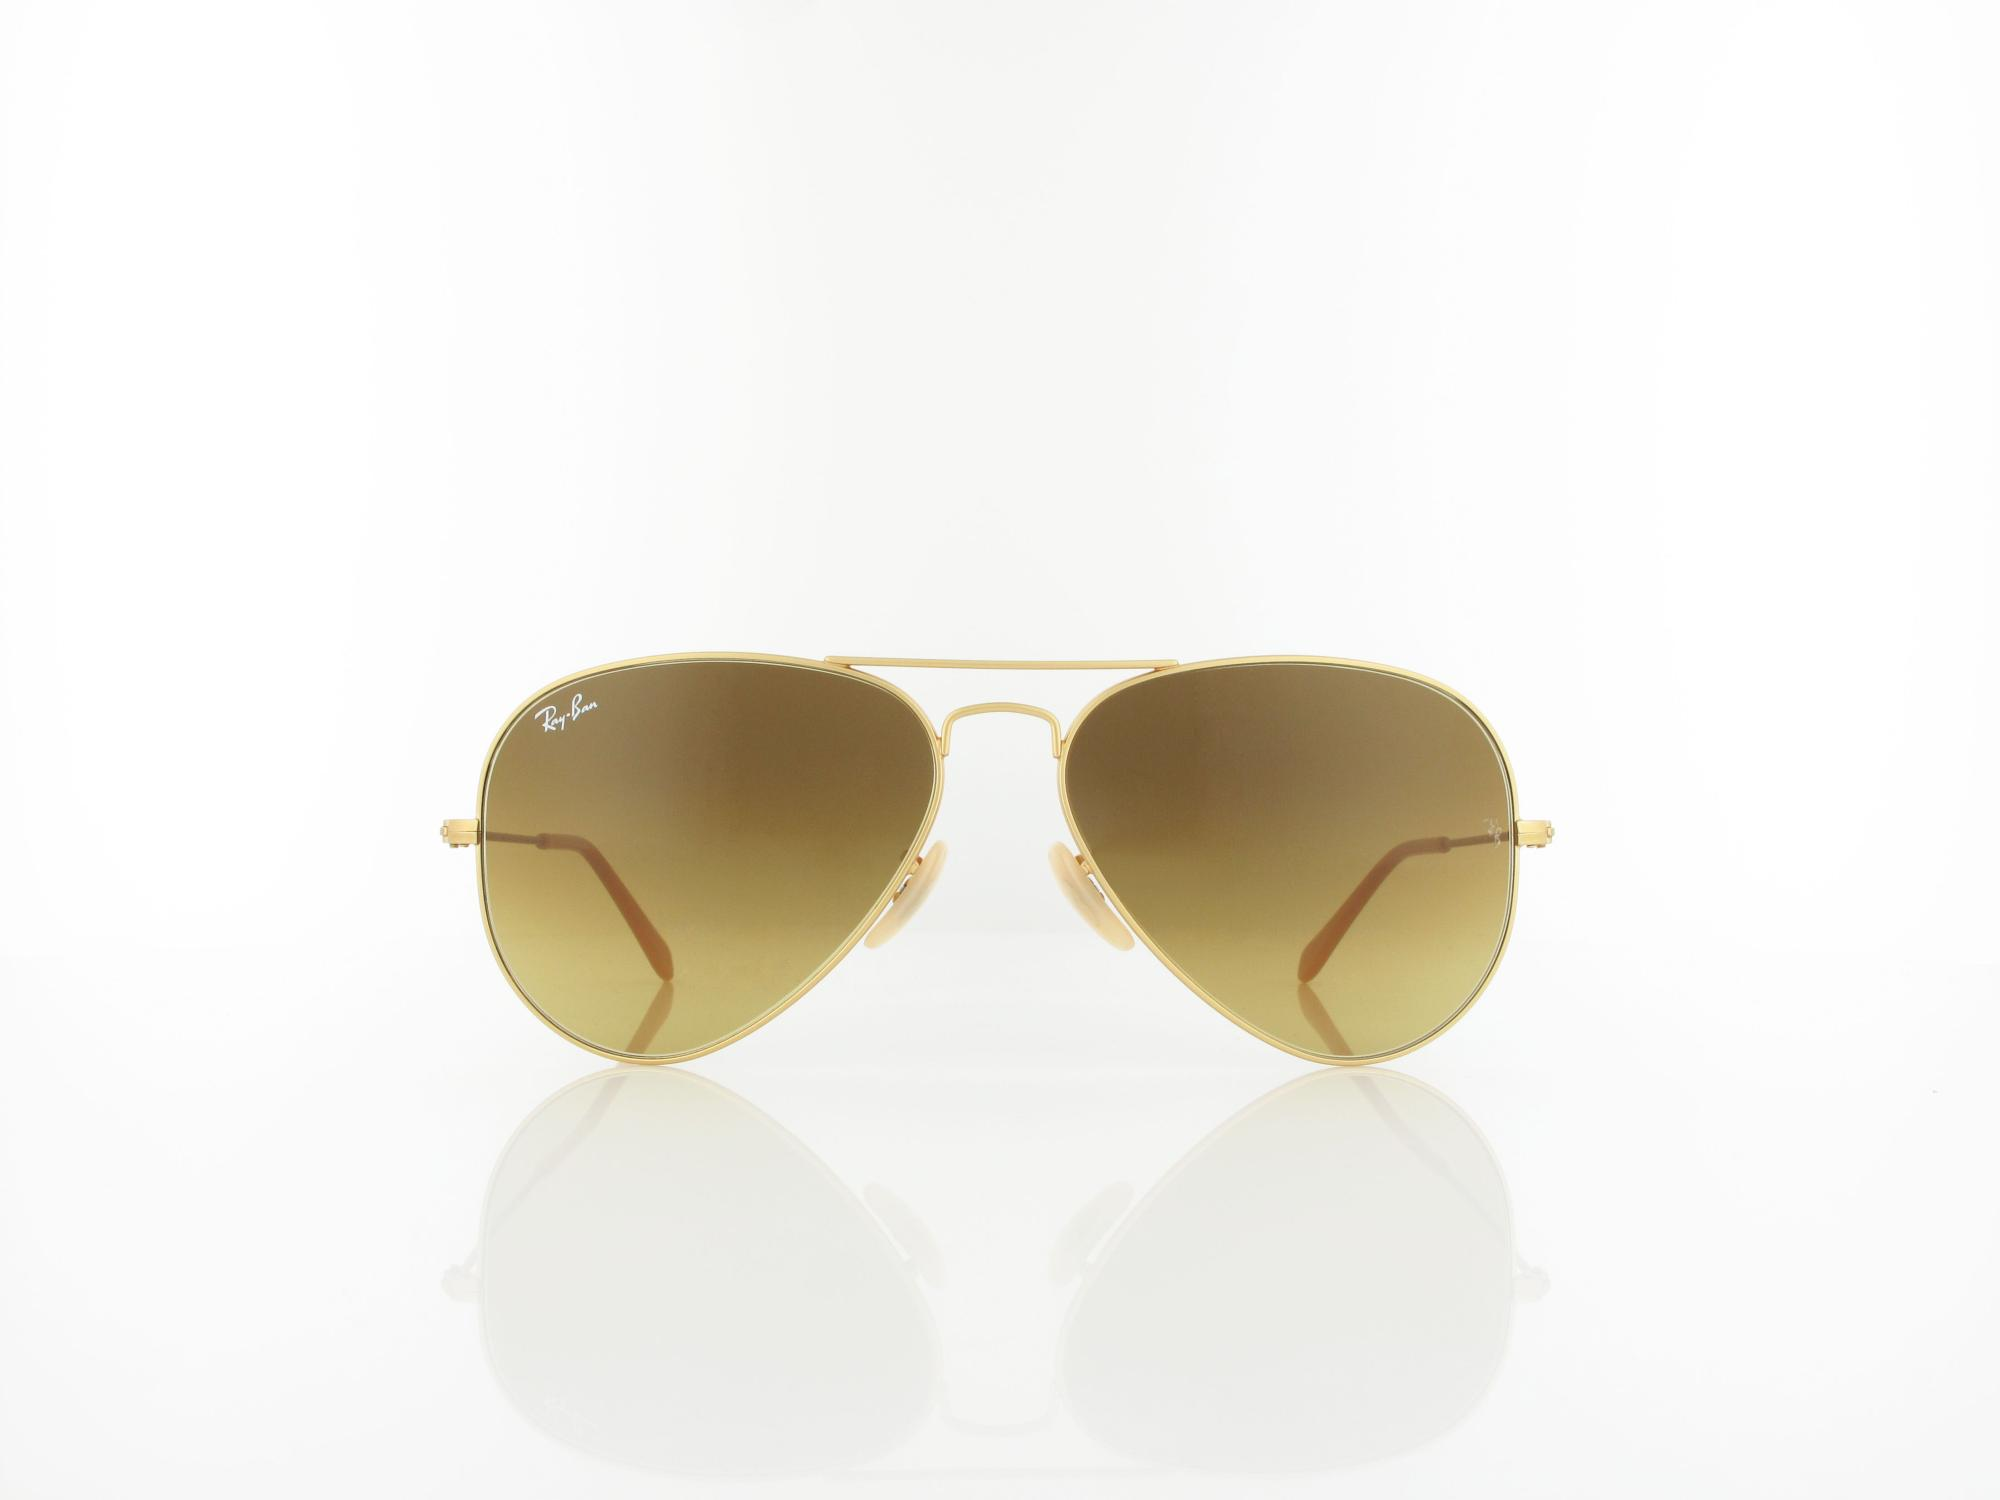 Ray Ban | Aviator Large Metal RB3025 112/85 58 | matte gold / brown gradient